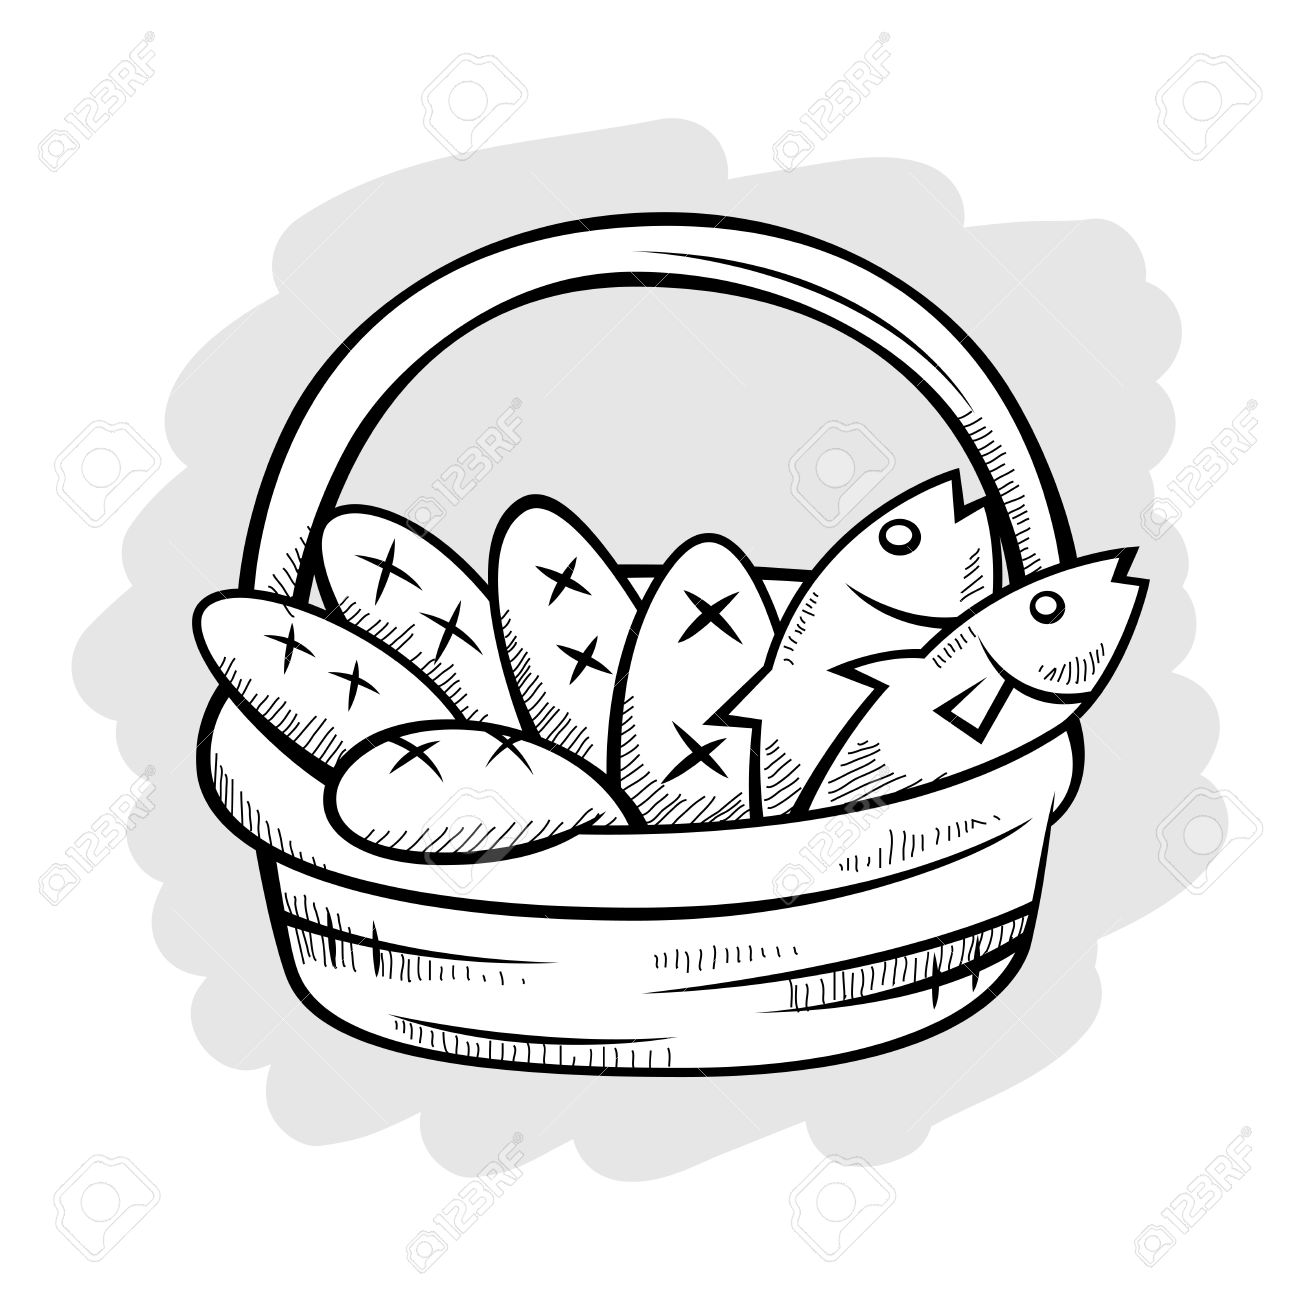 1300x1300 Five Bread And Two Fish In A Basket, Vector Illustration Royalty